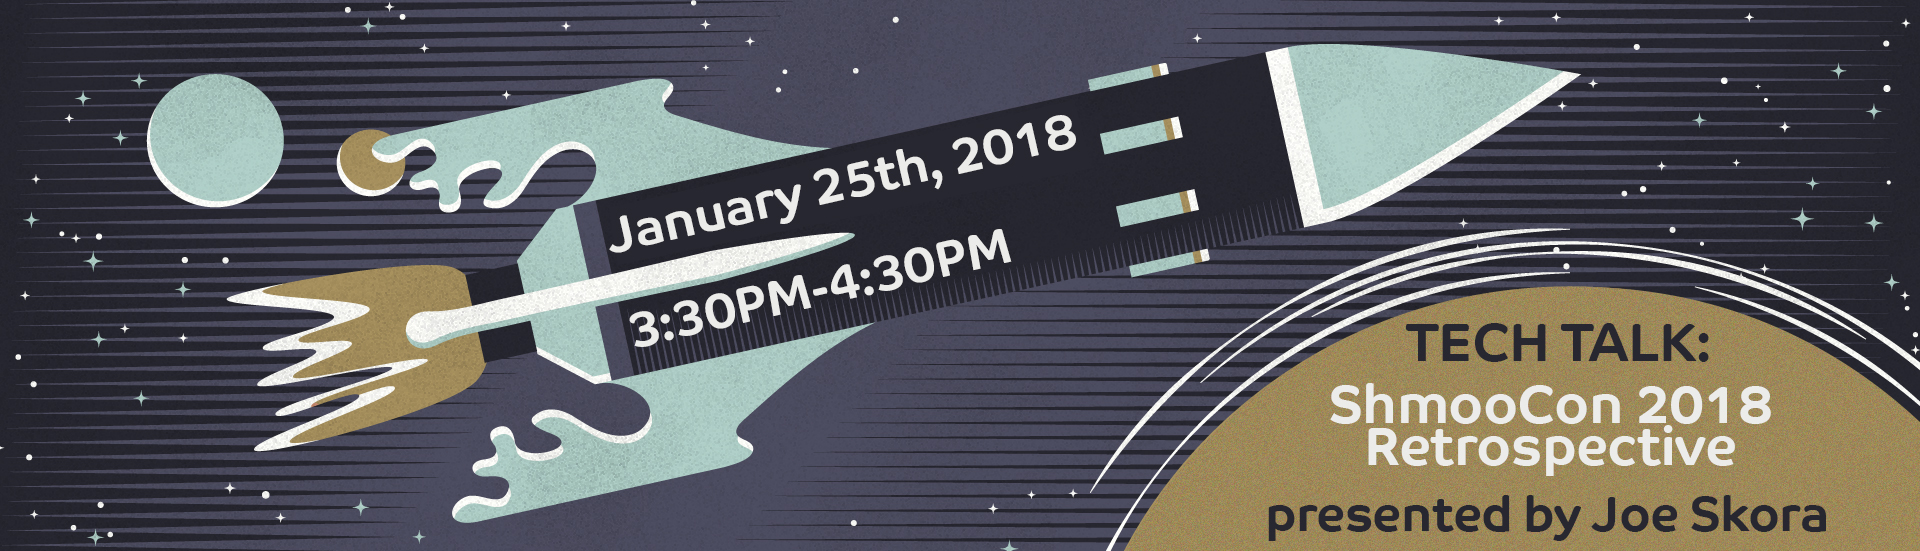 January 25th Tech Talk: ShmooCon 2018 Retrospective